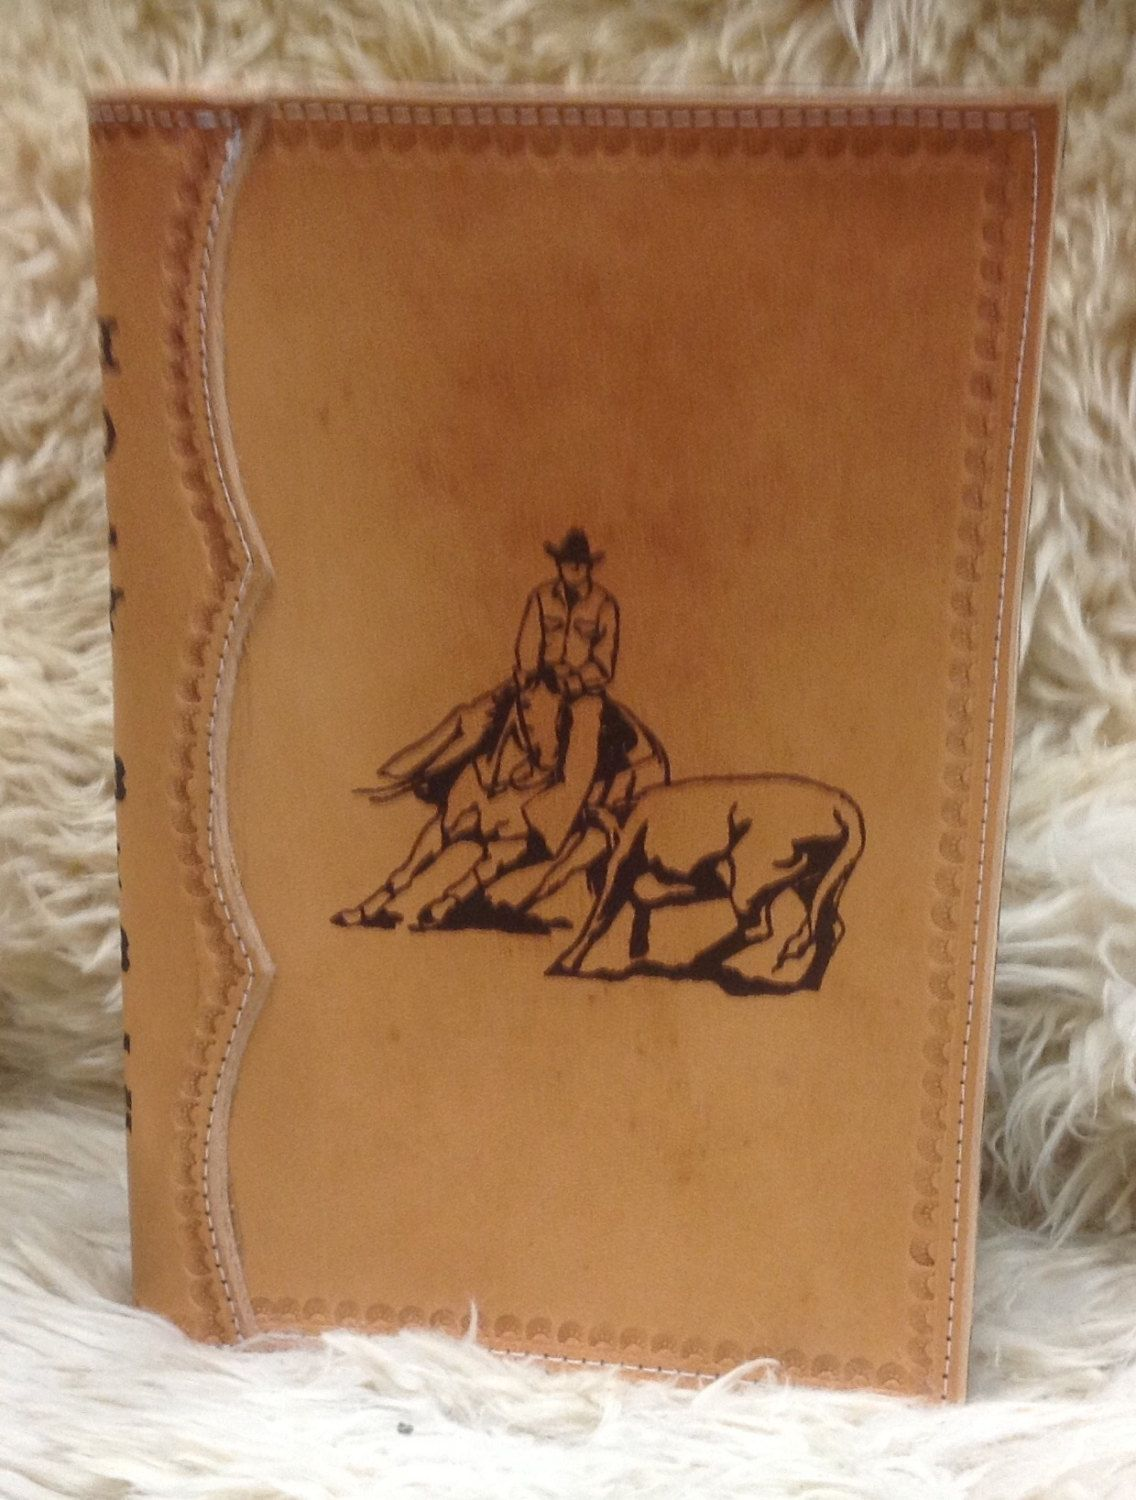 Handcrafted Laser Engraved Cowboy Cutter All Leather Bible Cover by MyBrandedCreations on Etsy